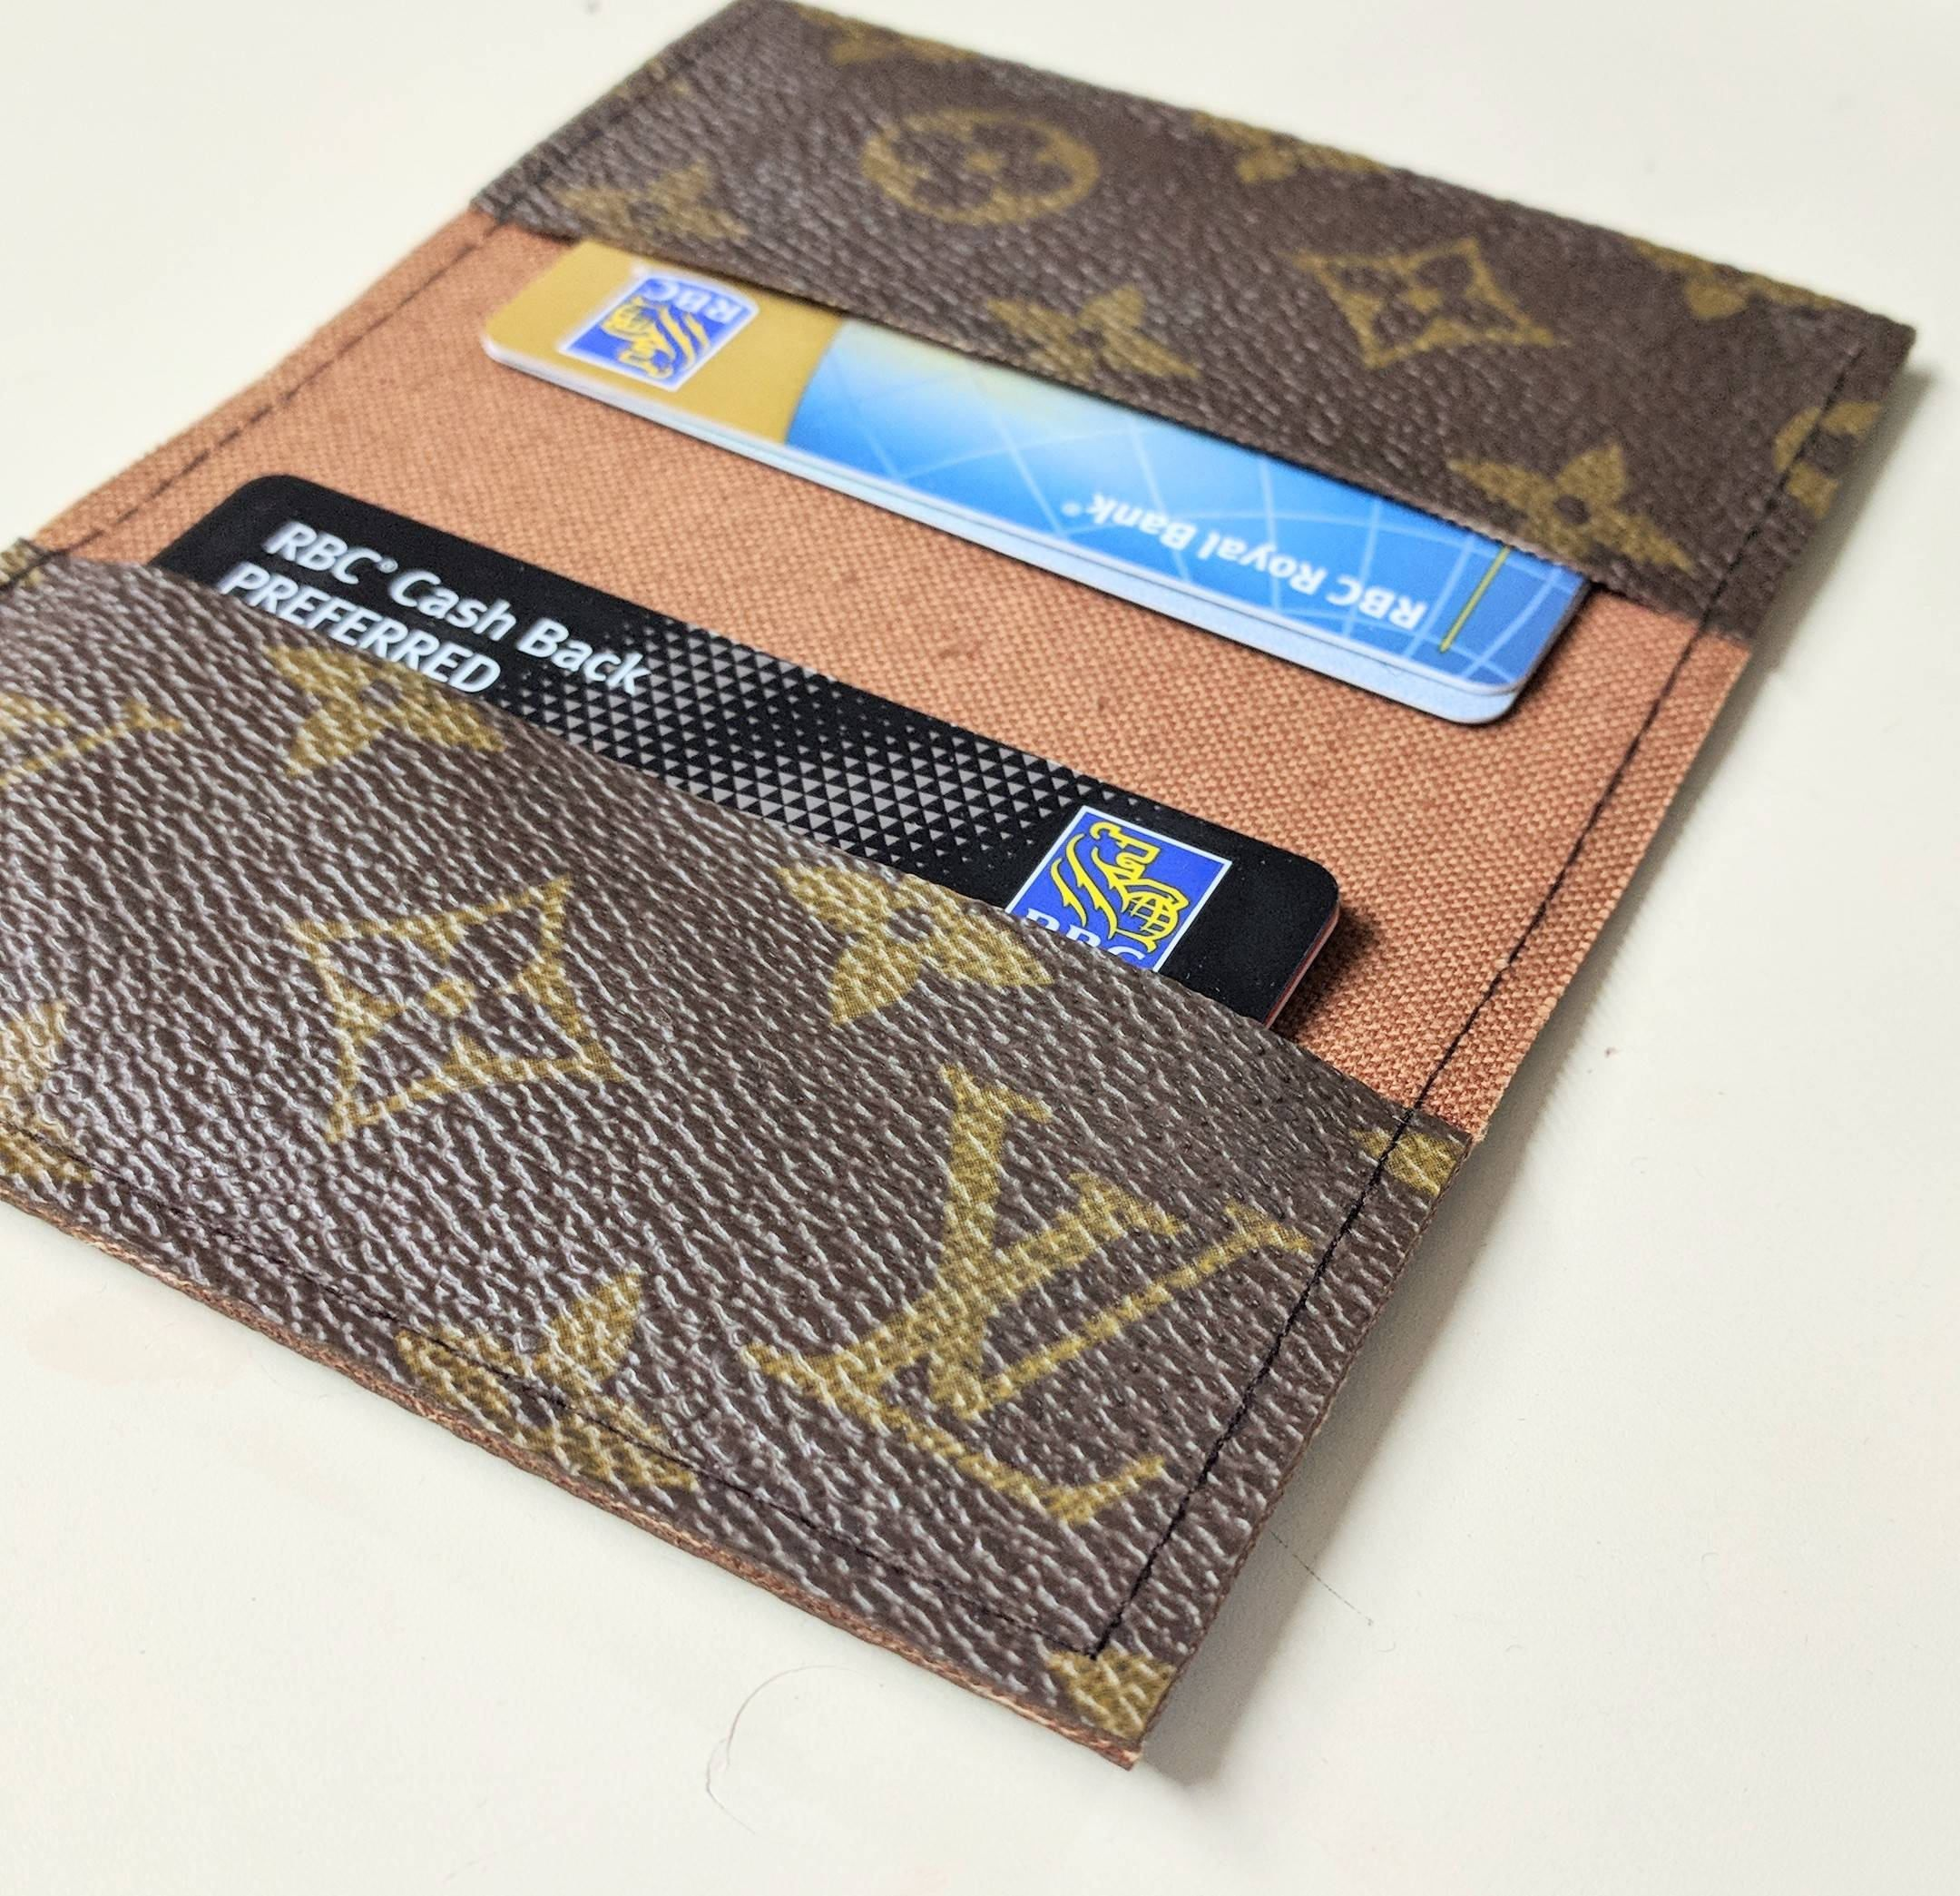 21204be20475 LV business card holder - Repurposed Louis Vuitton small wallet ...